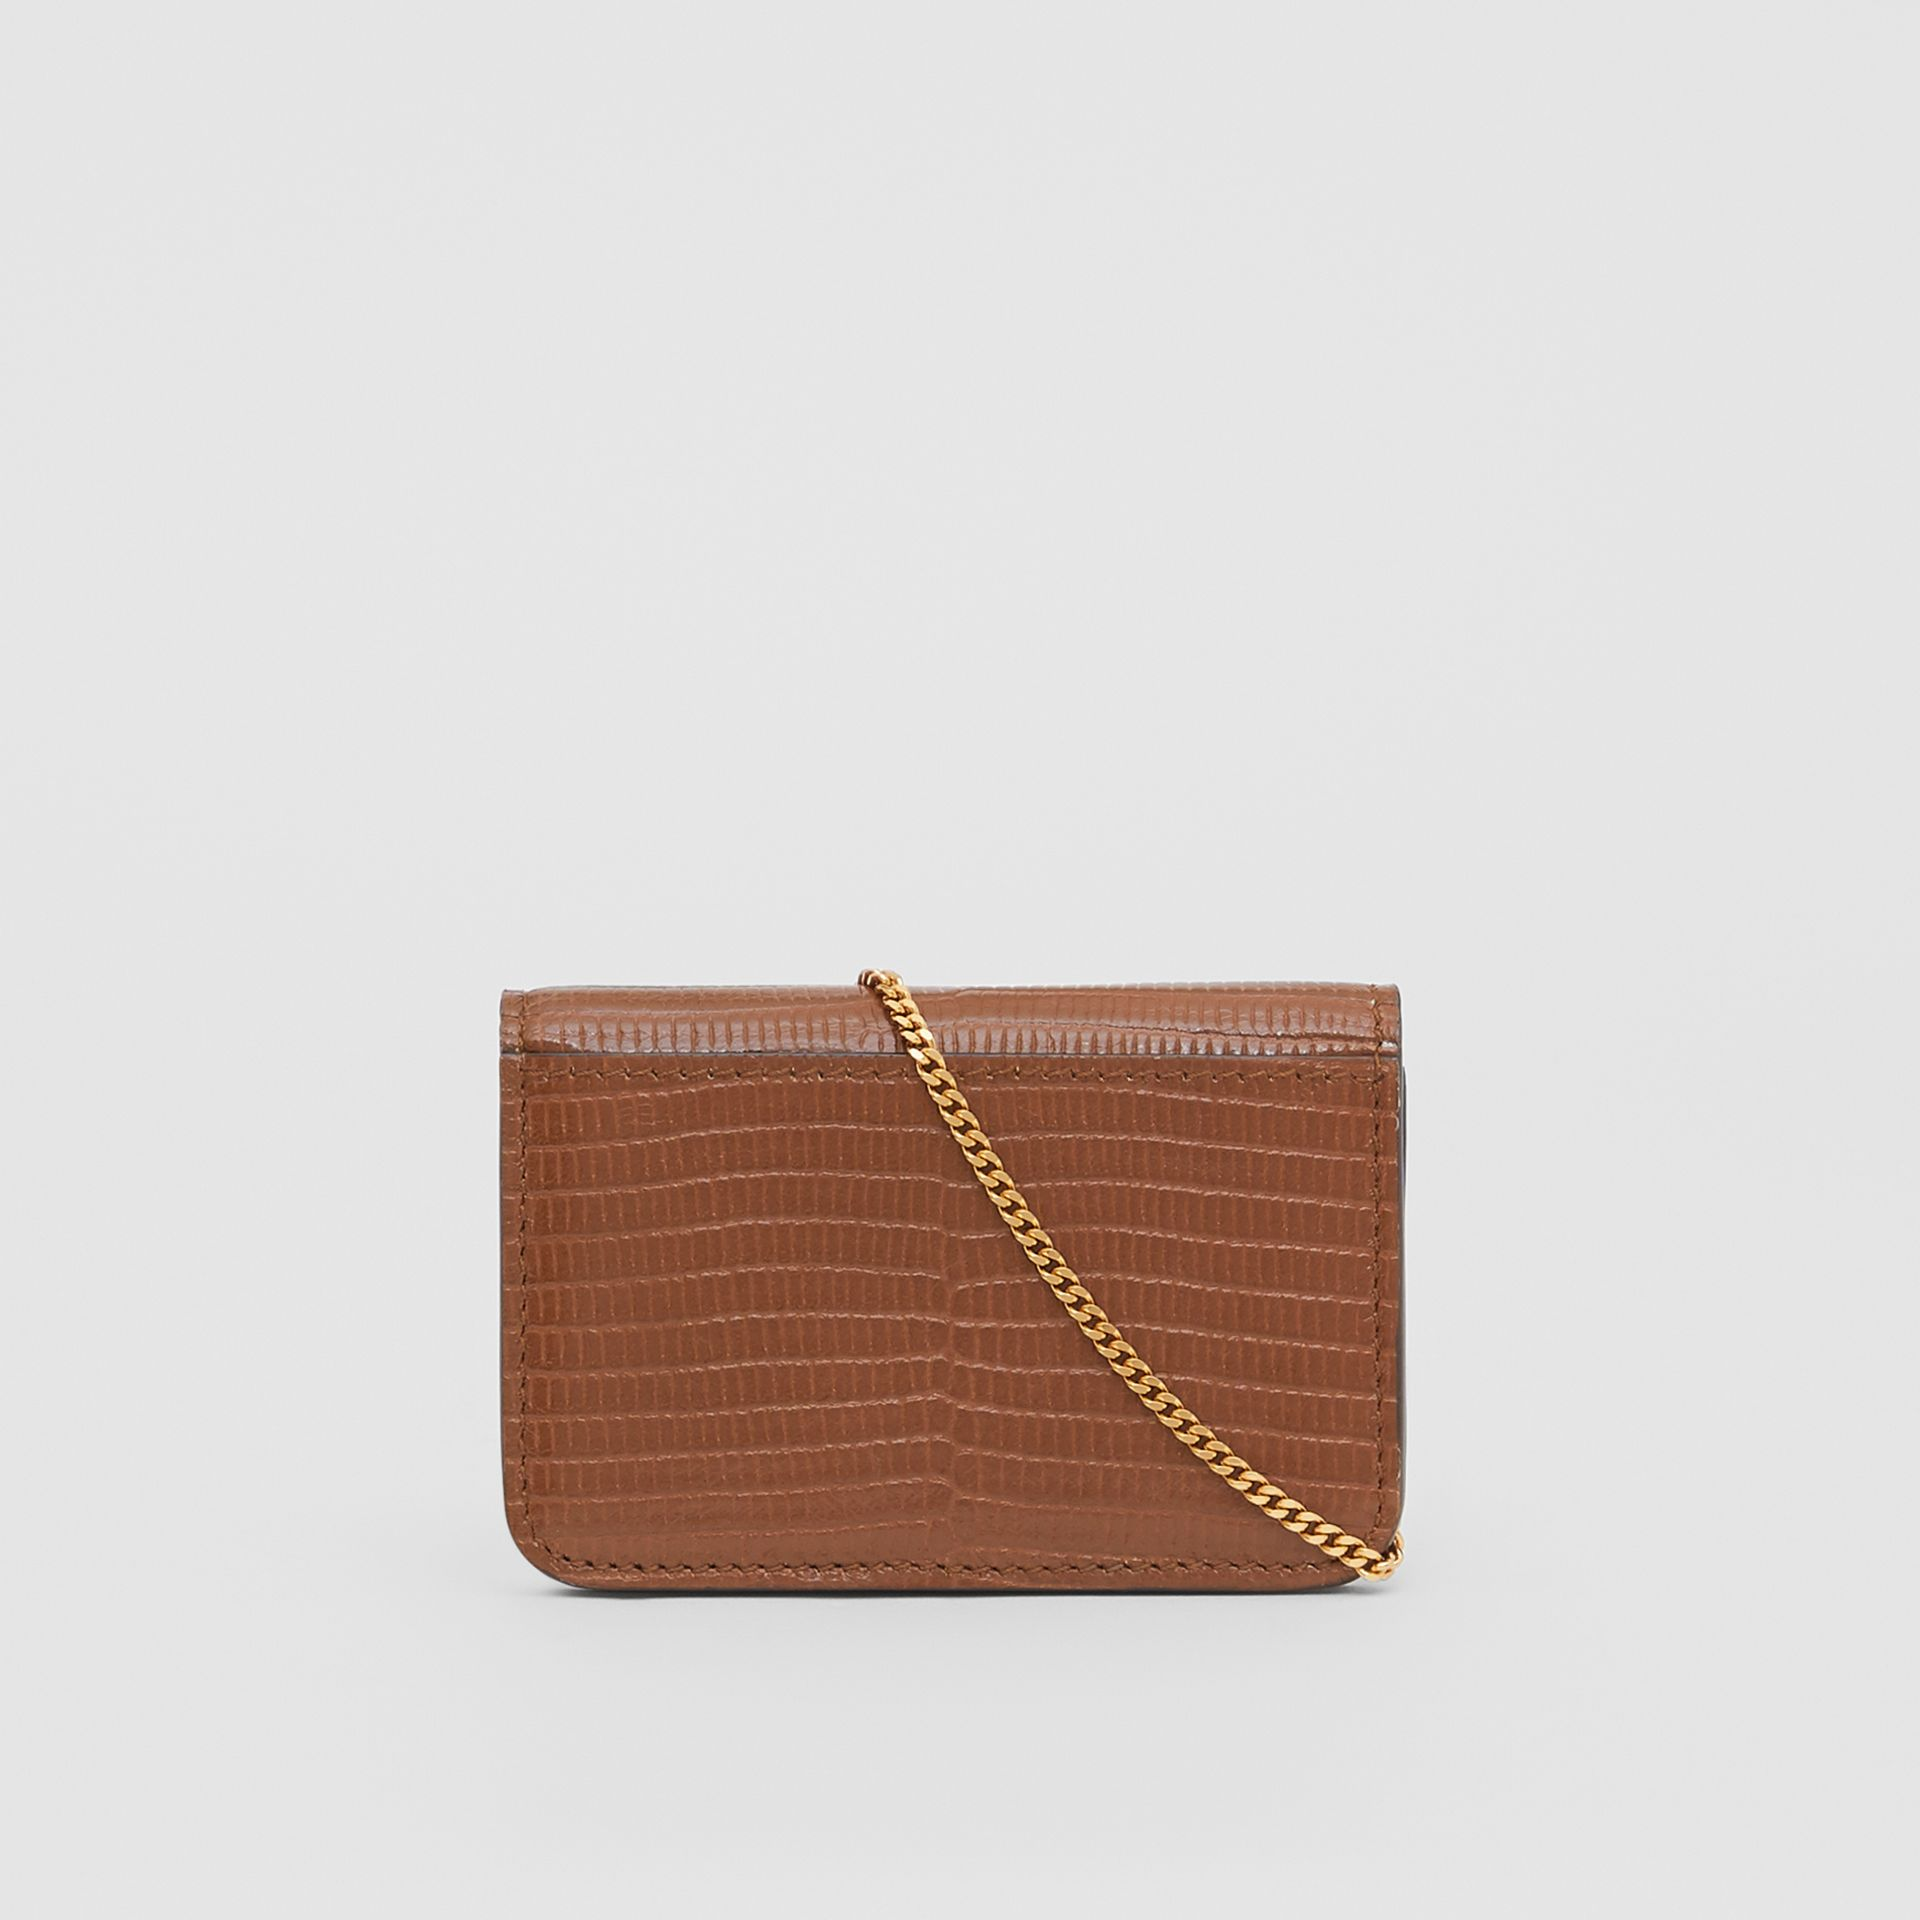 Embossed Deerskin Card Case with Chain Strap in Tan - Women | Burberry United Kingdom - gallery image 6